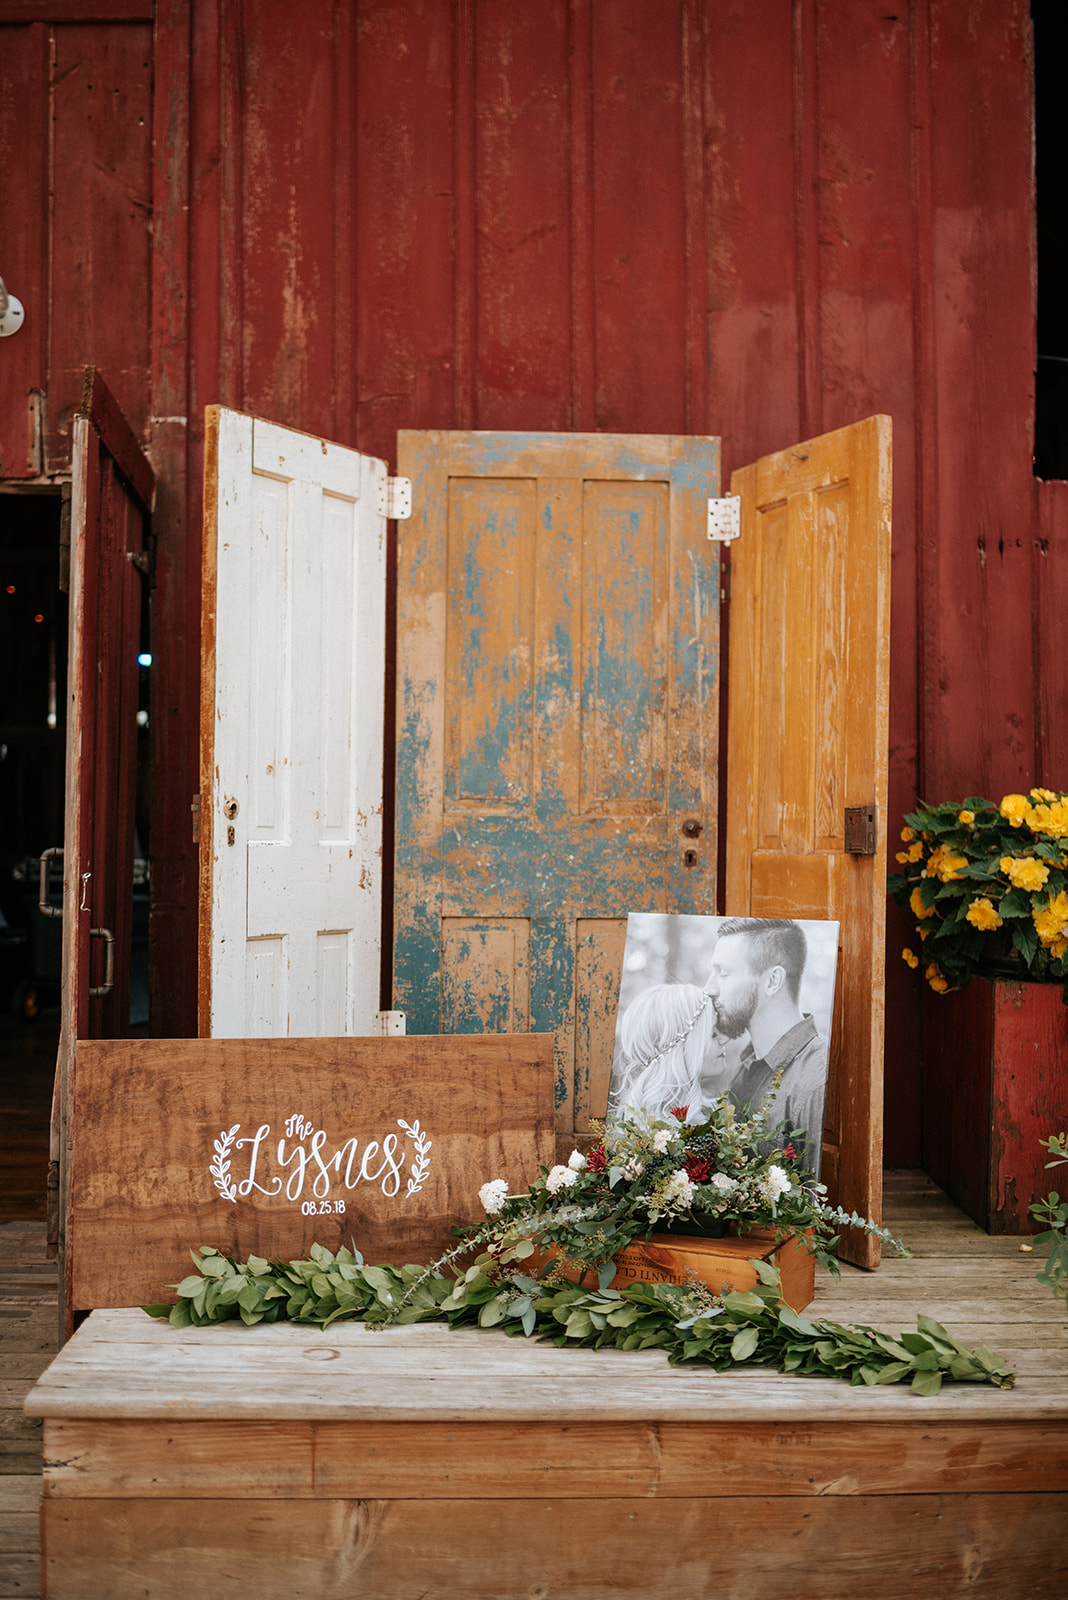 overthevineswisconsinwedding_1073.jpg